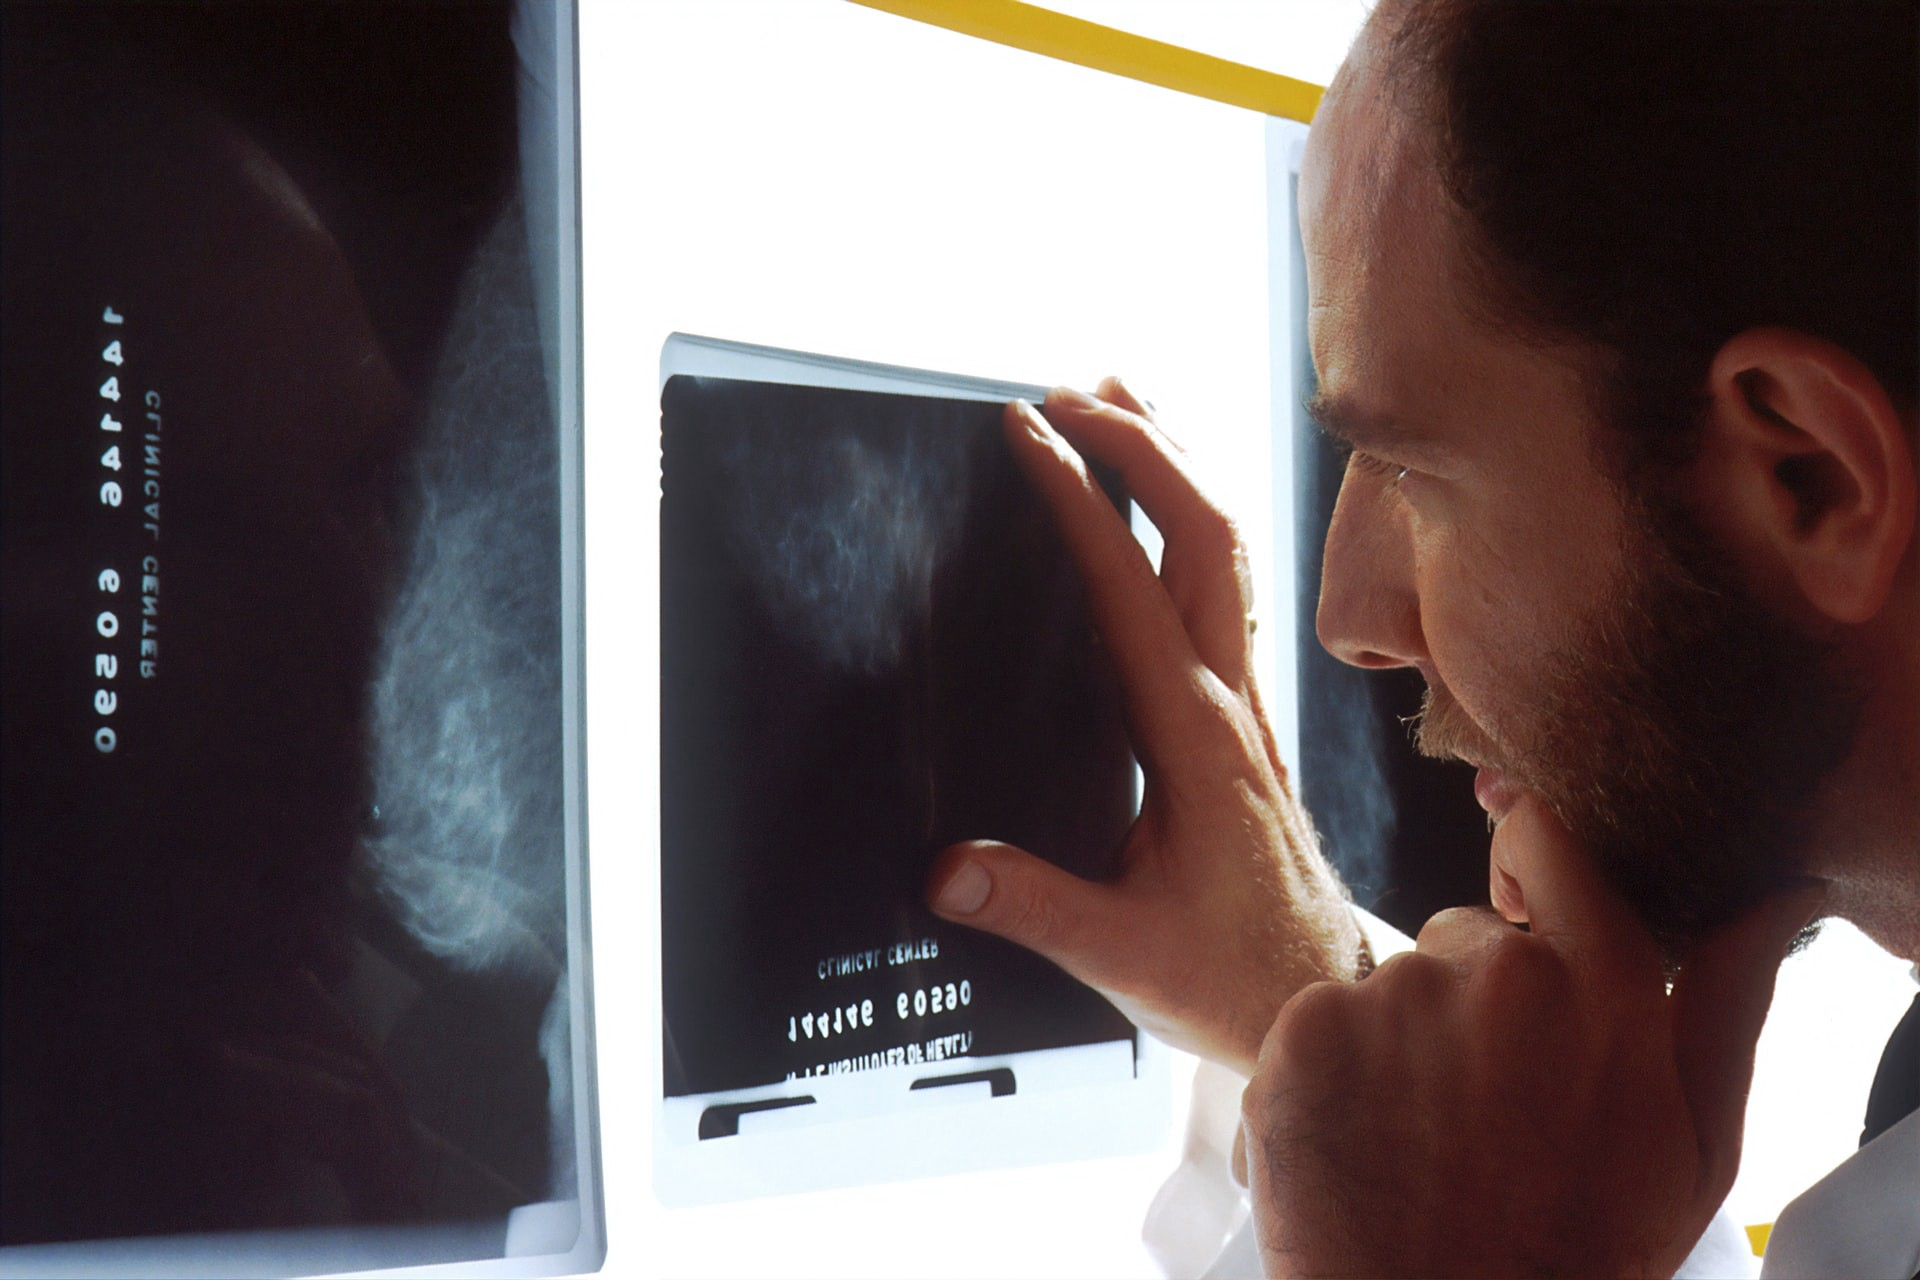 A medical doctor analysing a cancer scan